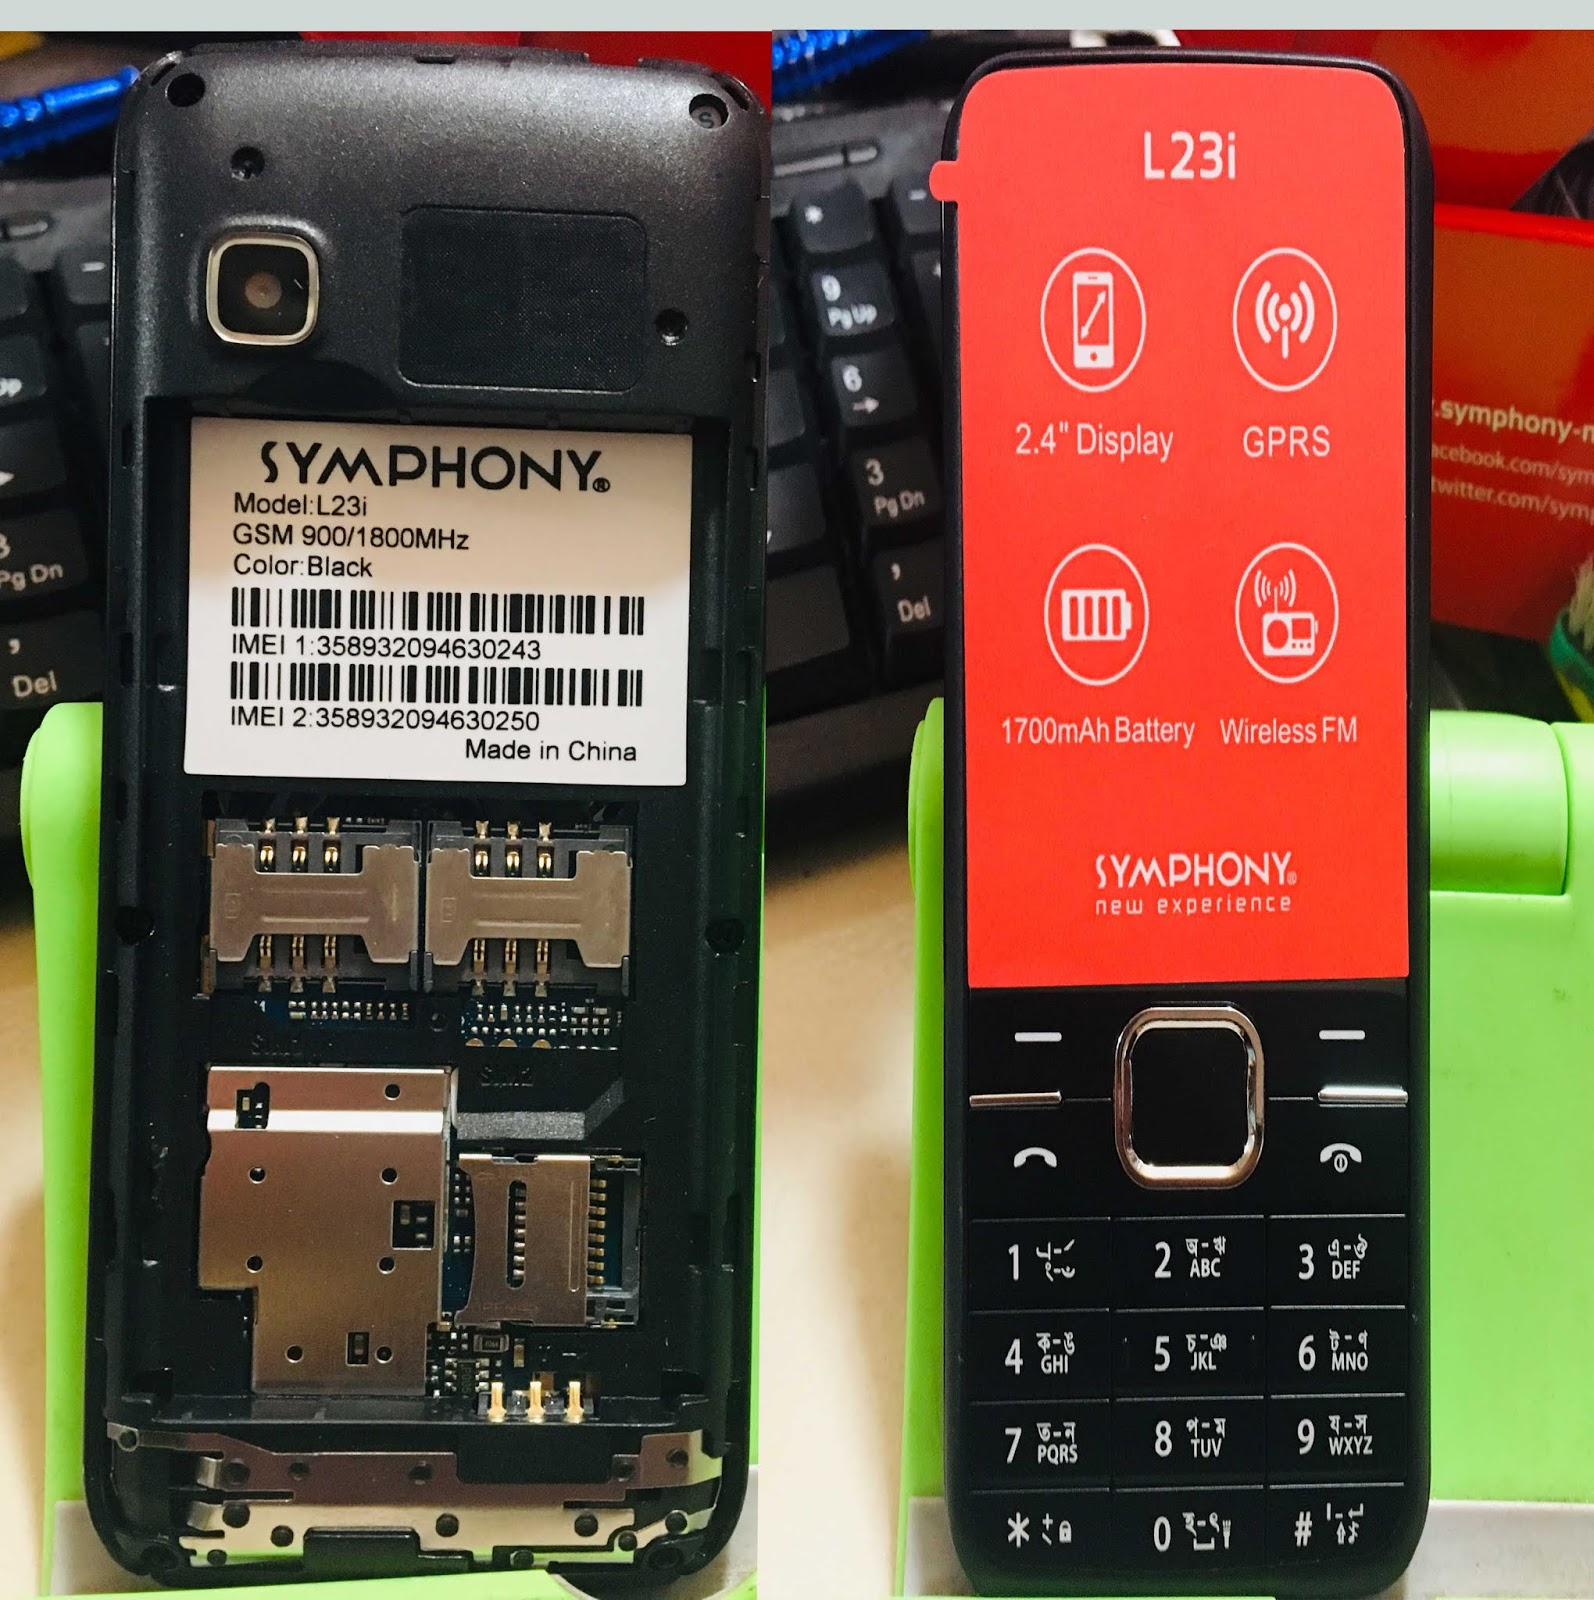 Symphony L23i flash file full free without password Spd 6531E Read